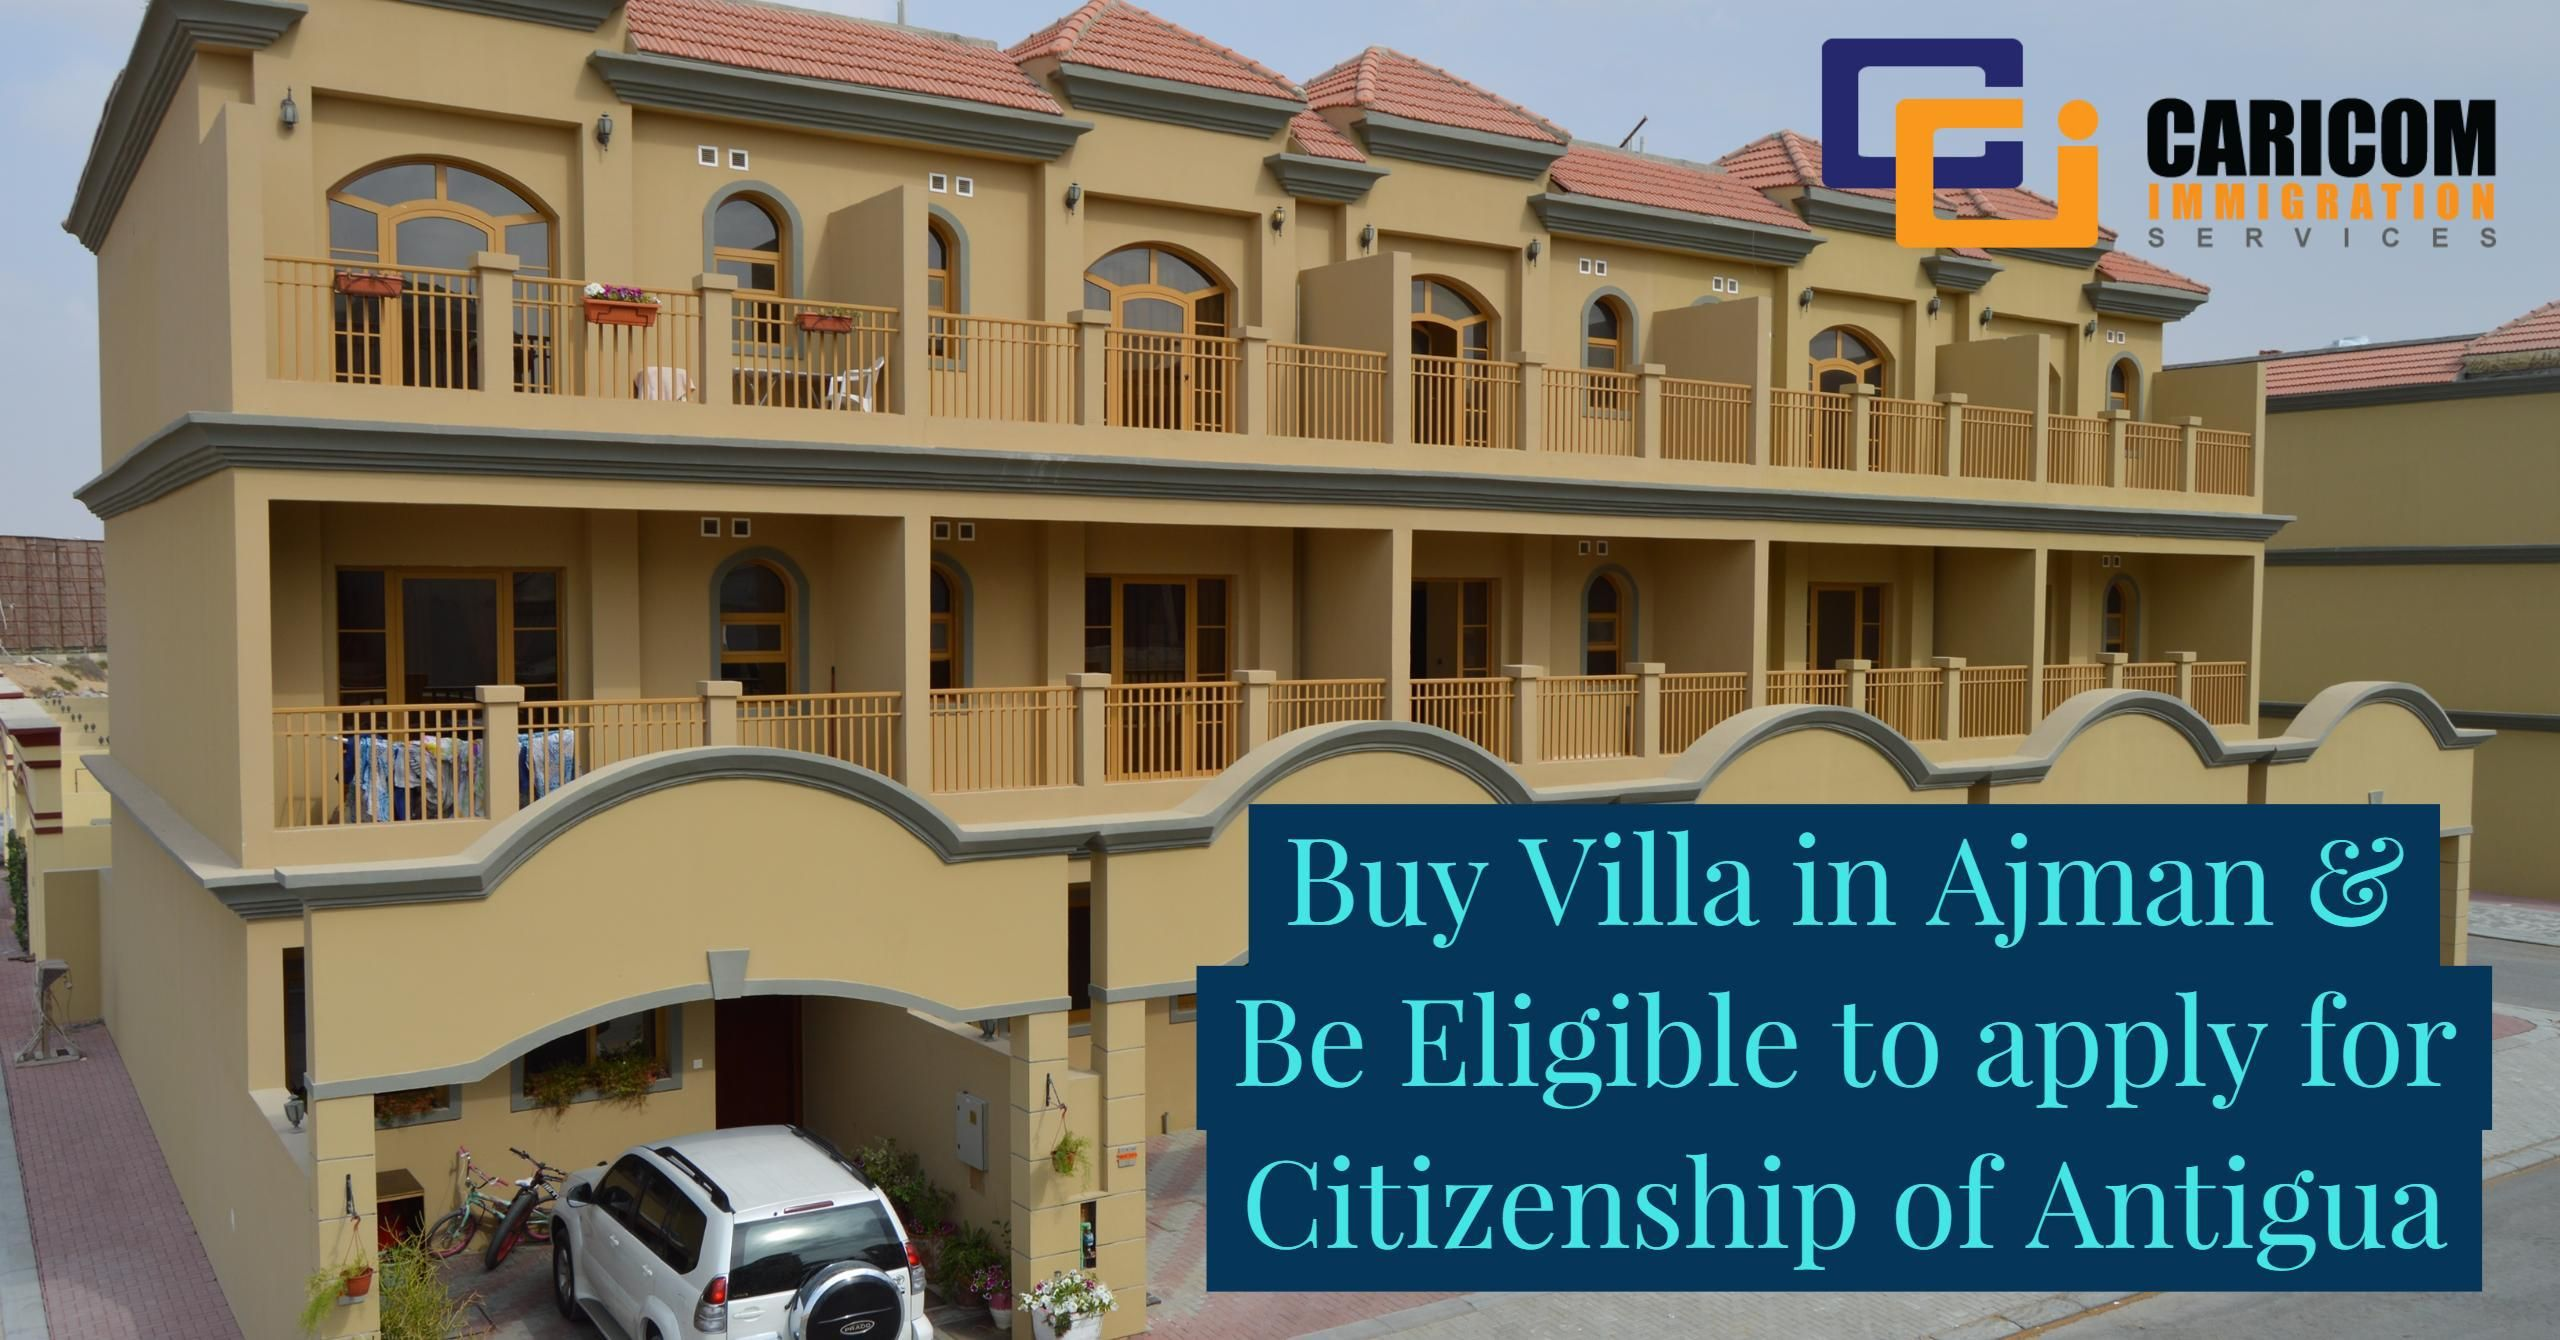 Get Second Passport Simply And Quicklytizenship And Passport Within 3  Months Requirements